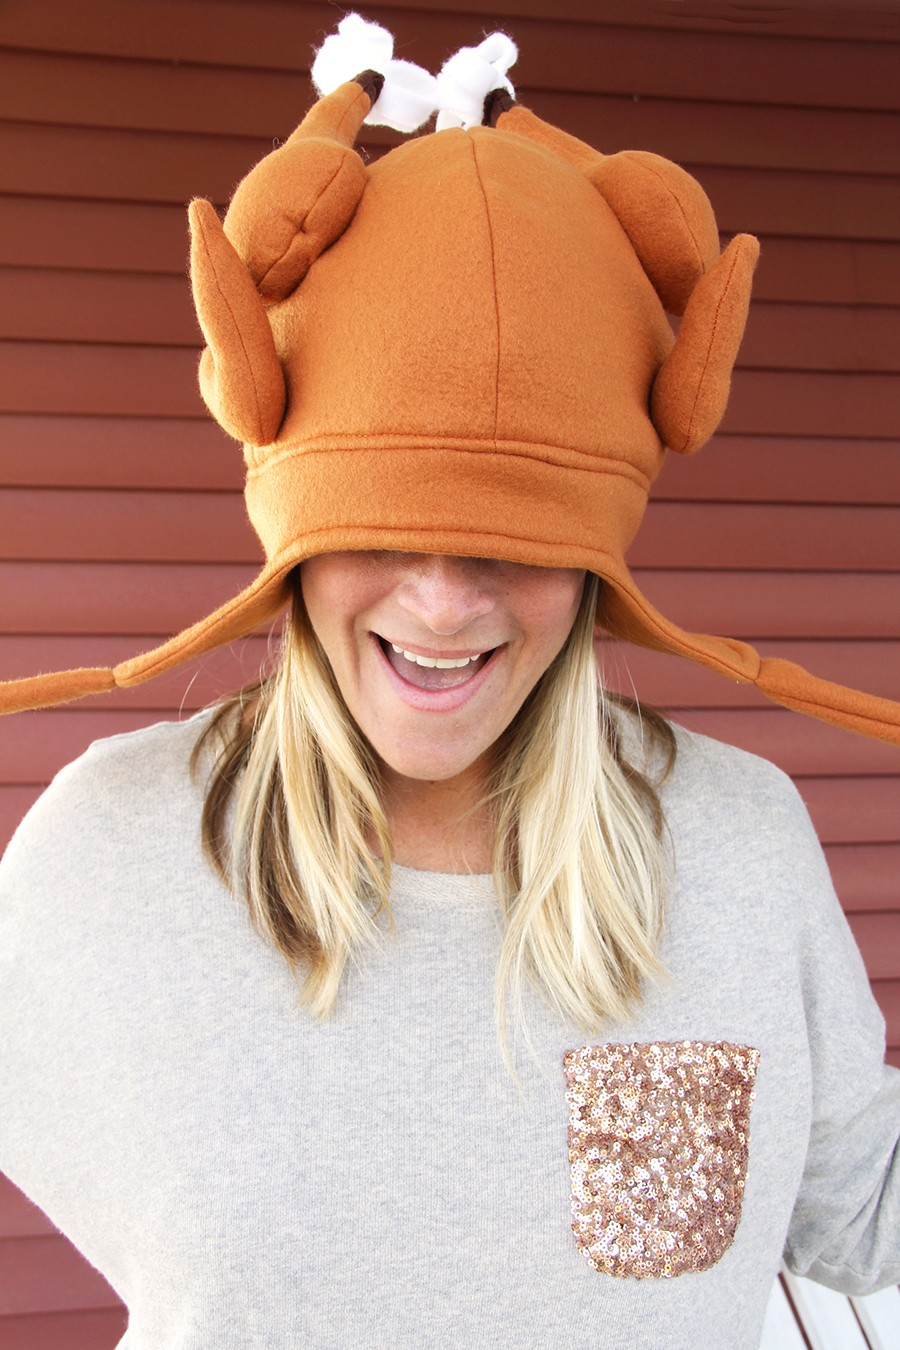 turkey hat pattern - silly hat for Thanksgiving!